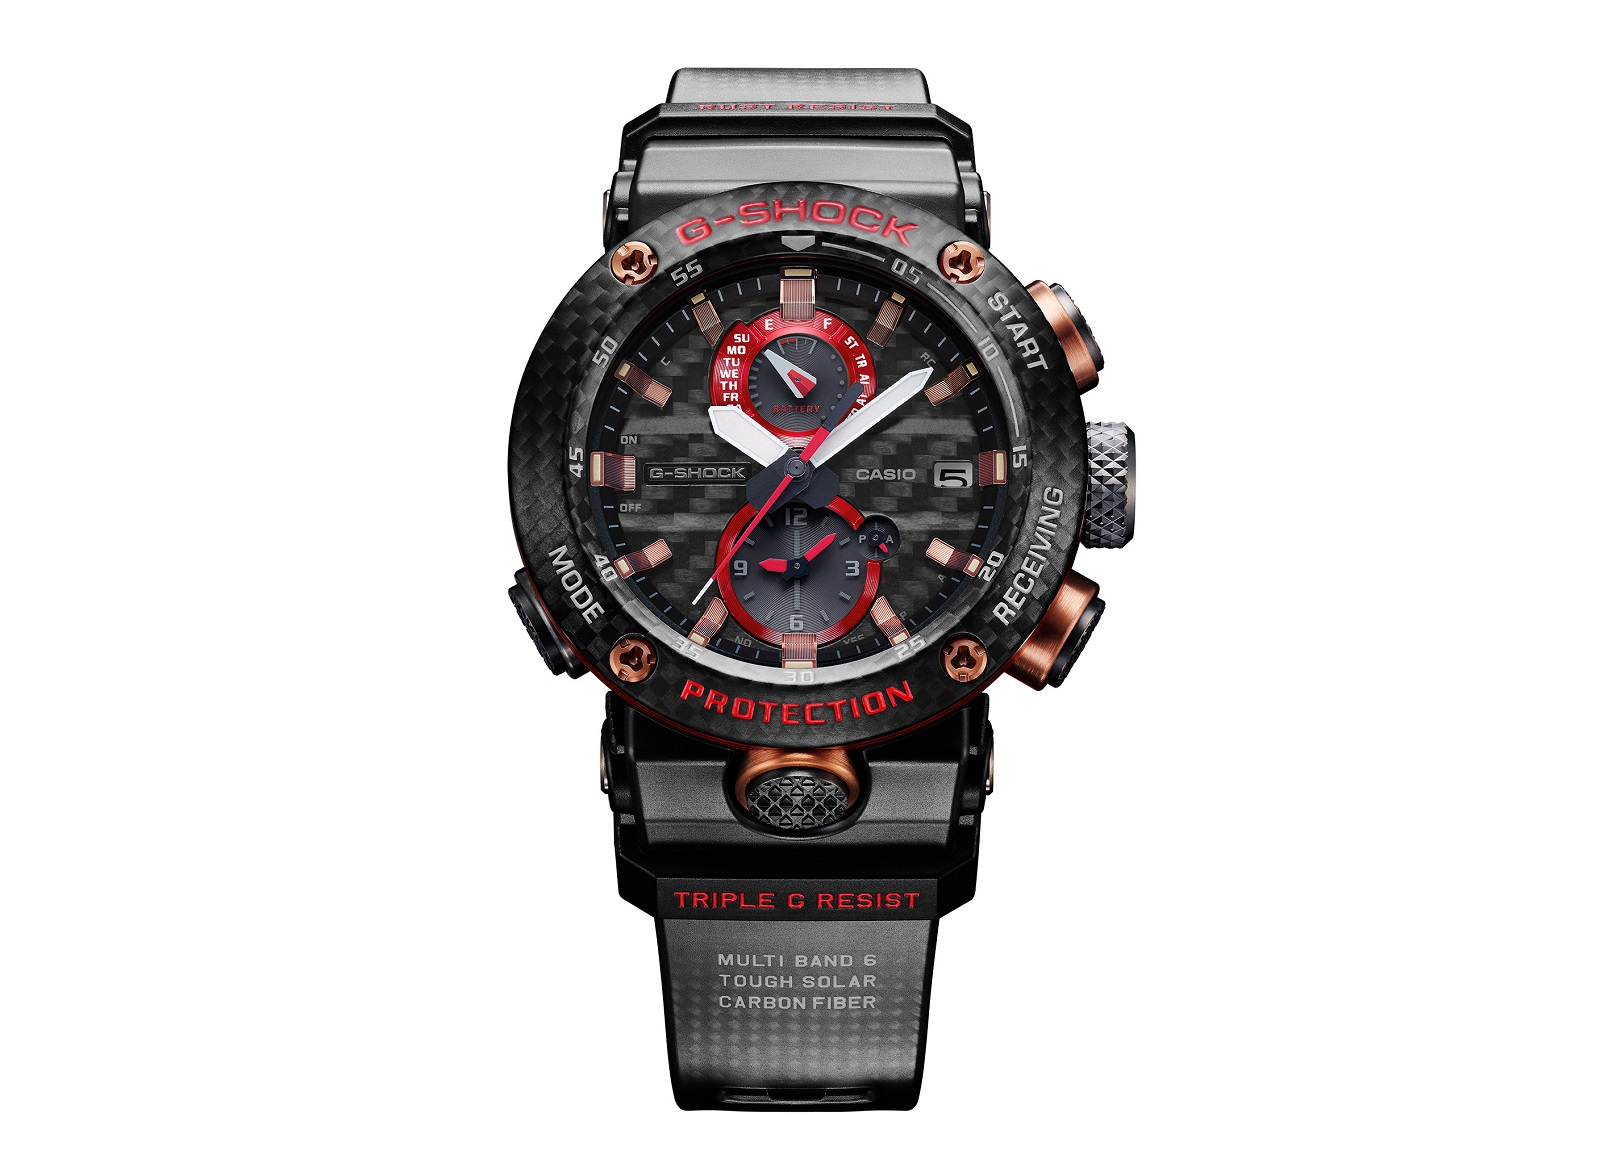 The limited edition GWR-B1000X sees the brand's red in its accents instead